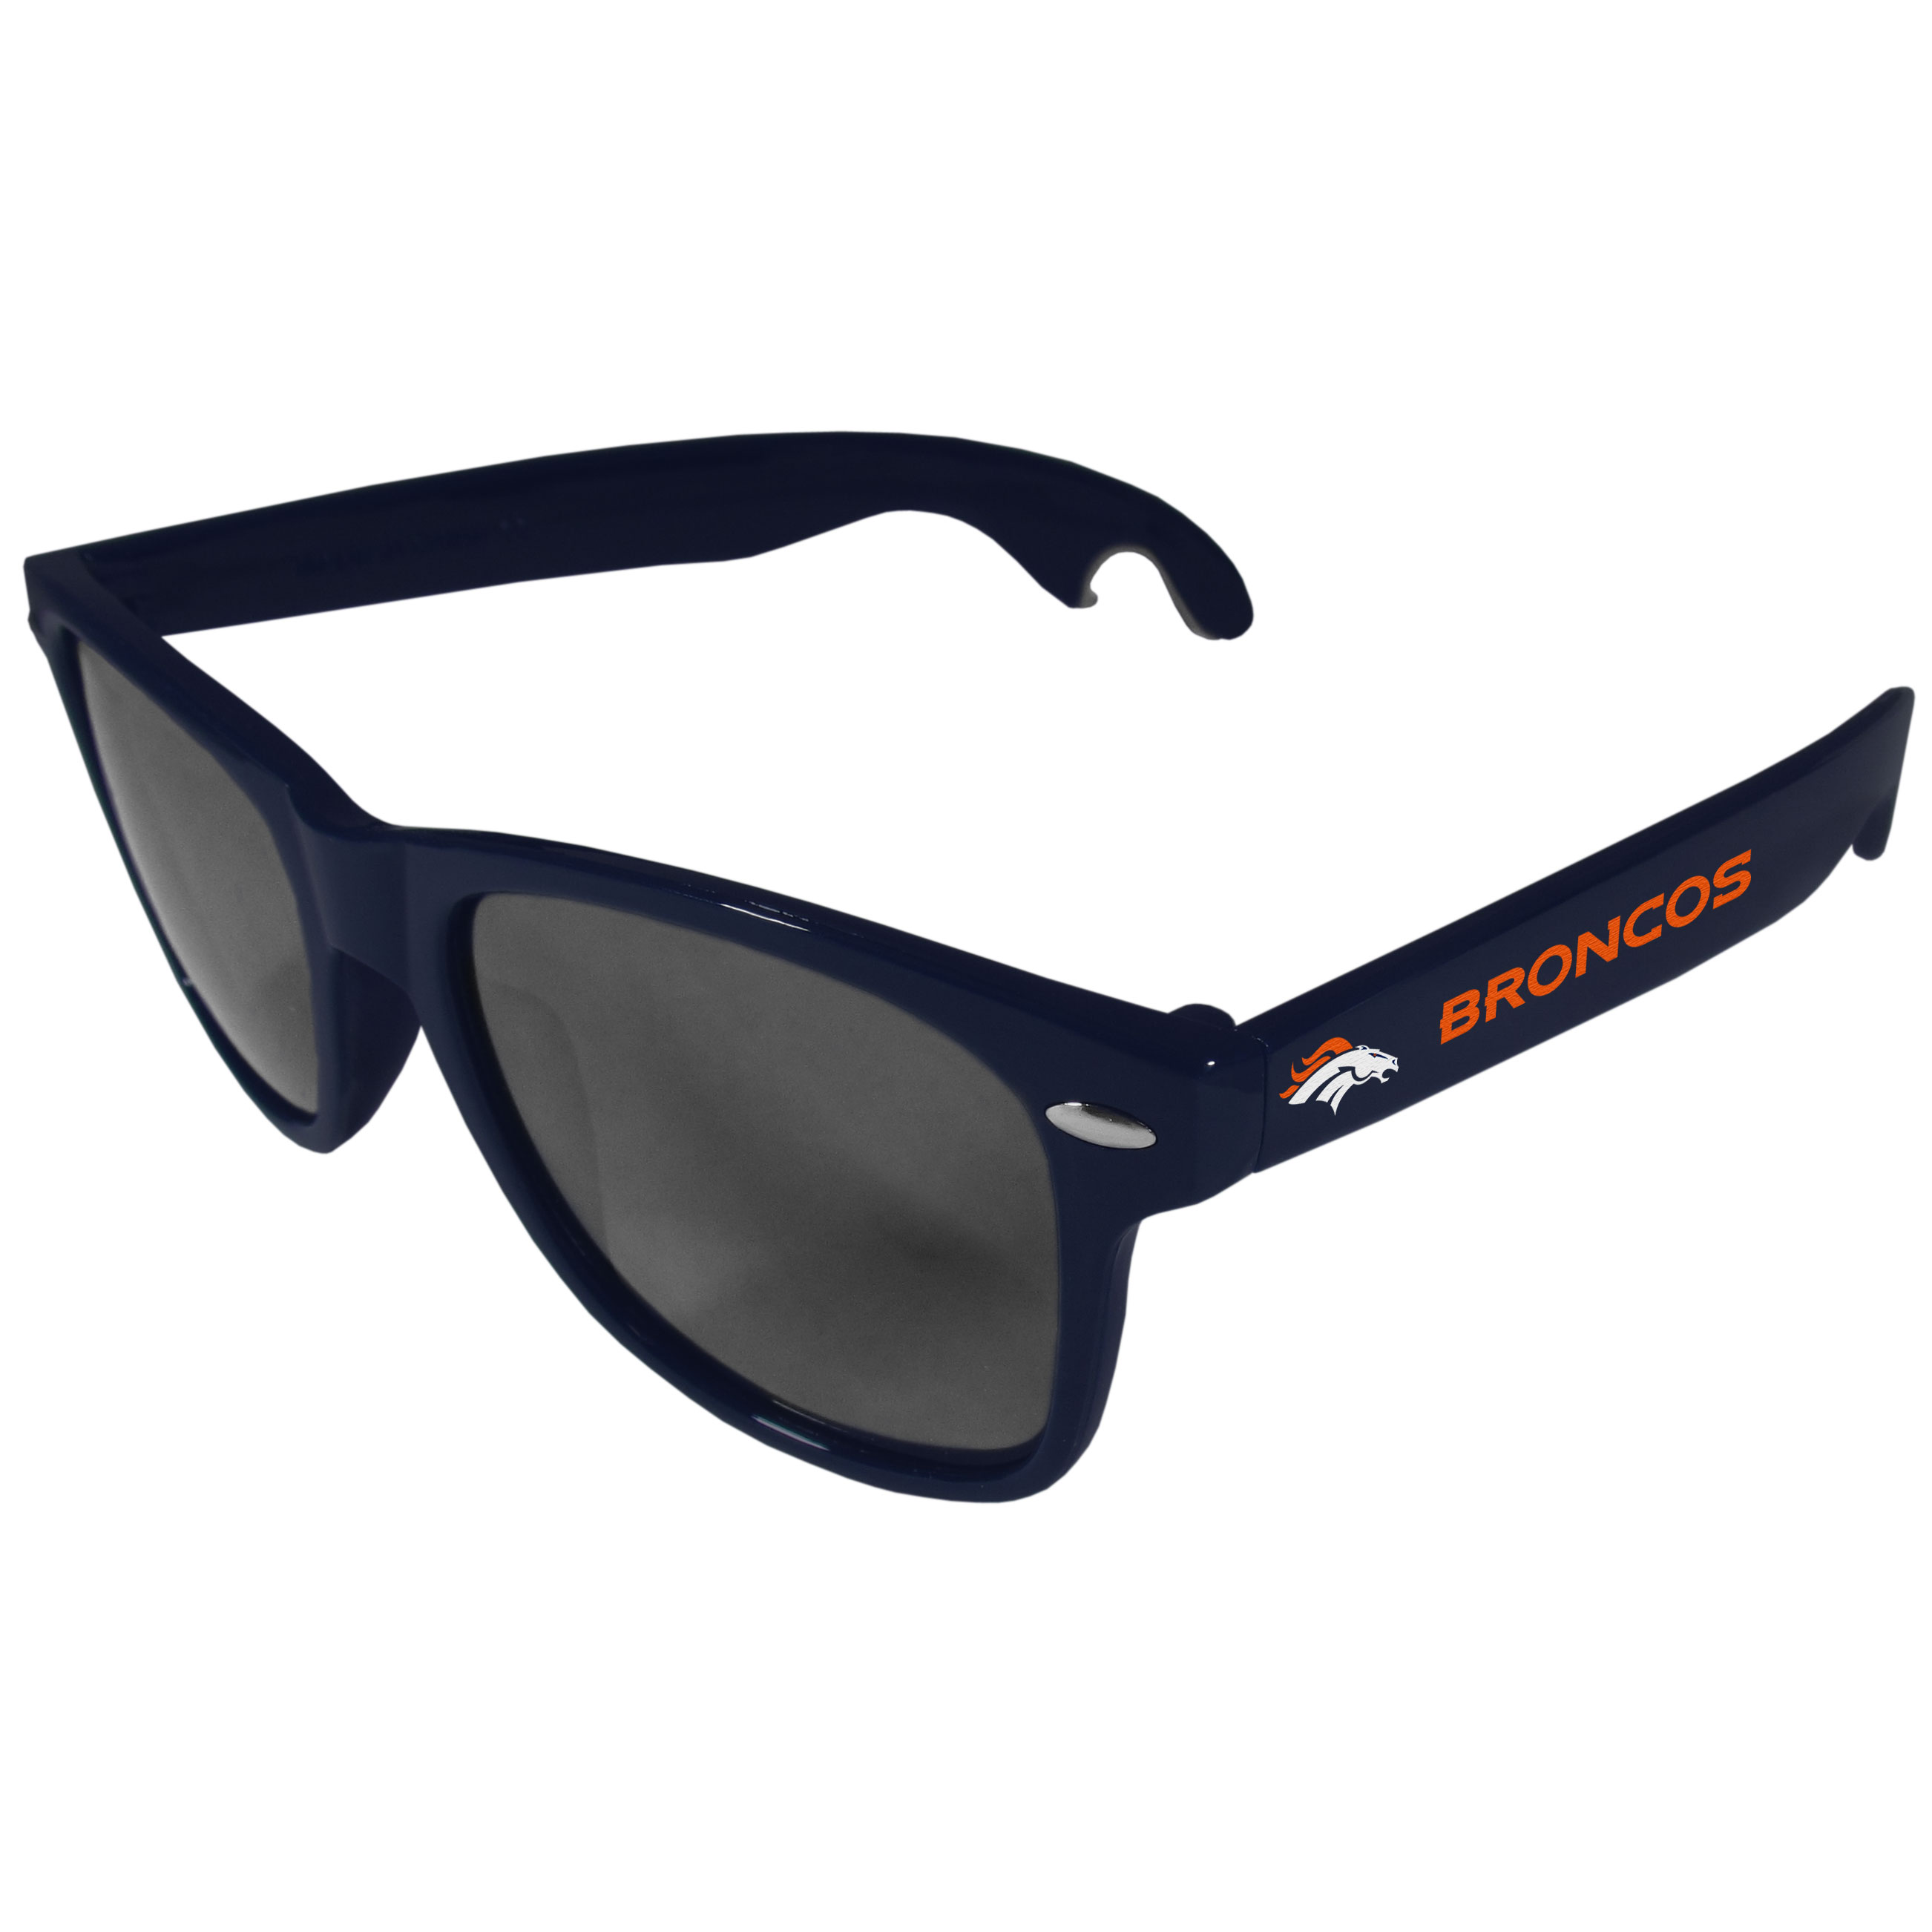 Denver Broncos Beachfarer Bottle Opener Sunglasses, Dark Blue - Seriously, these sunglasses open bottles! Keep the party going with these amazing Denver Broncos bottle opener sunglasses. The stylish retro frames feature team designs on the arms and functional bottle openers on the end of the arms. Whether you are at the beach or having a backyard BBQ on game day, these shades will keep your eyes protected with 100% UVA/UVB protection and keep you hydrated with the handy bottle opener arms.